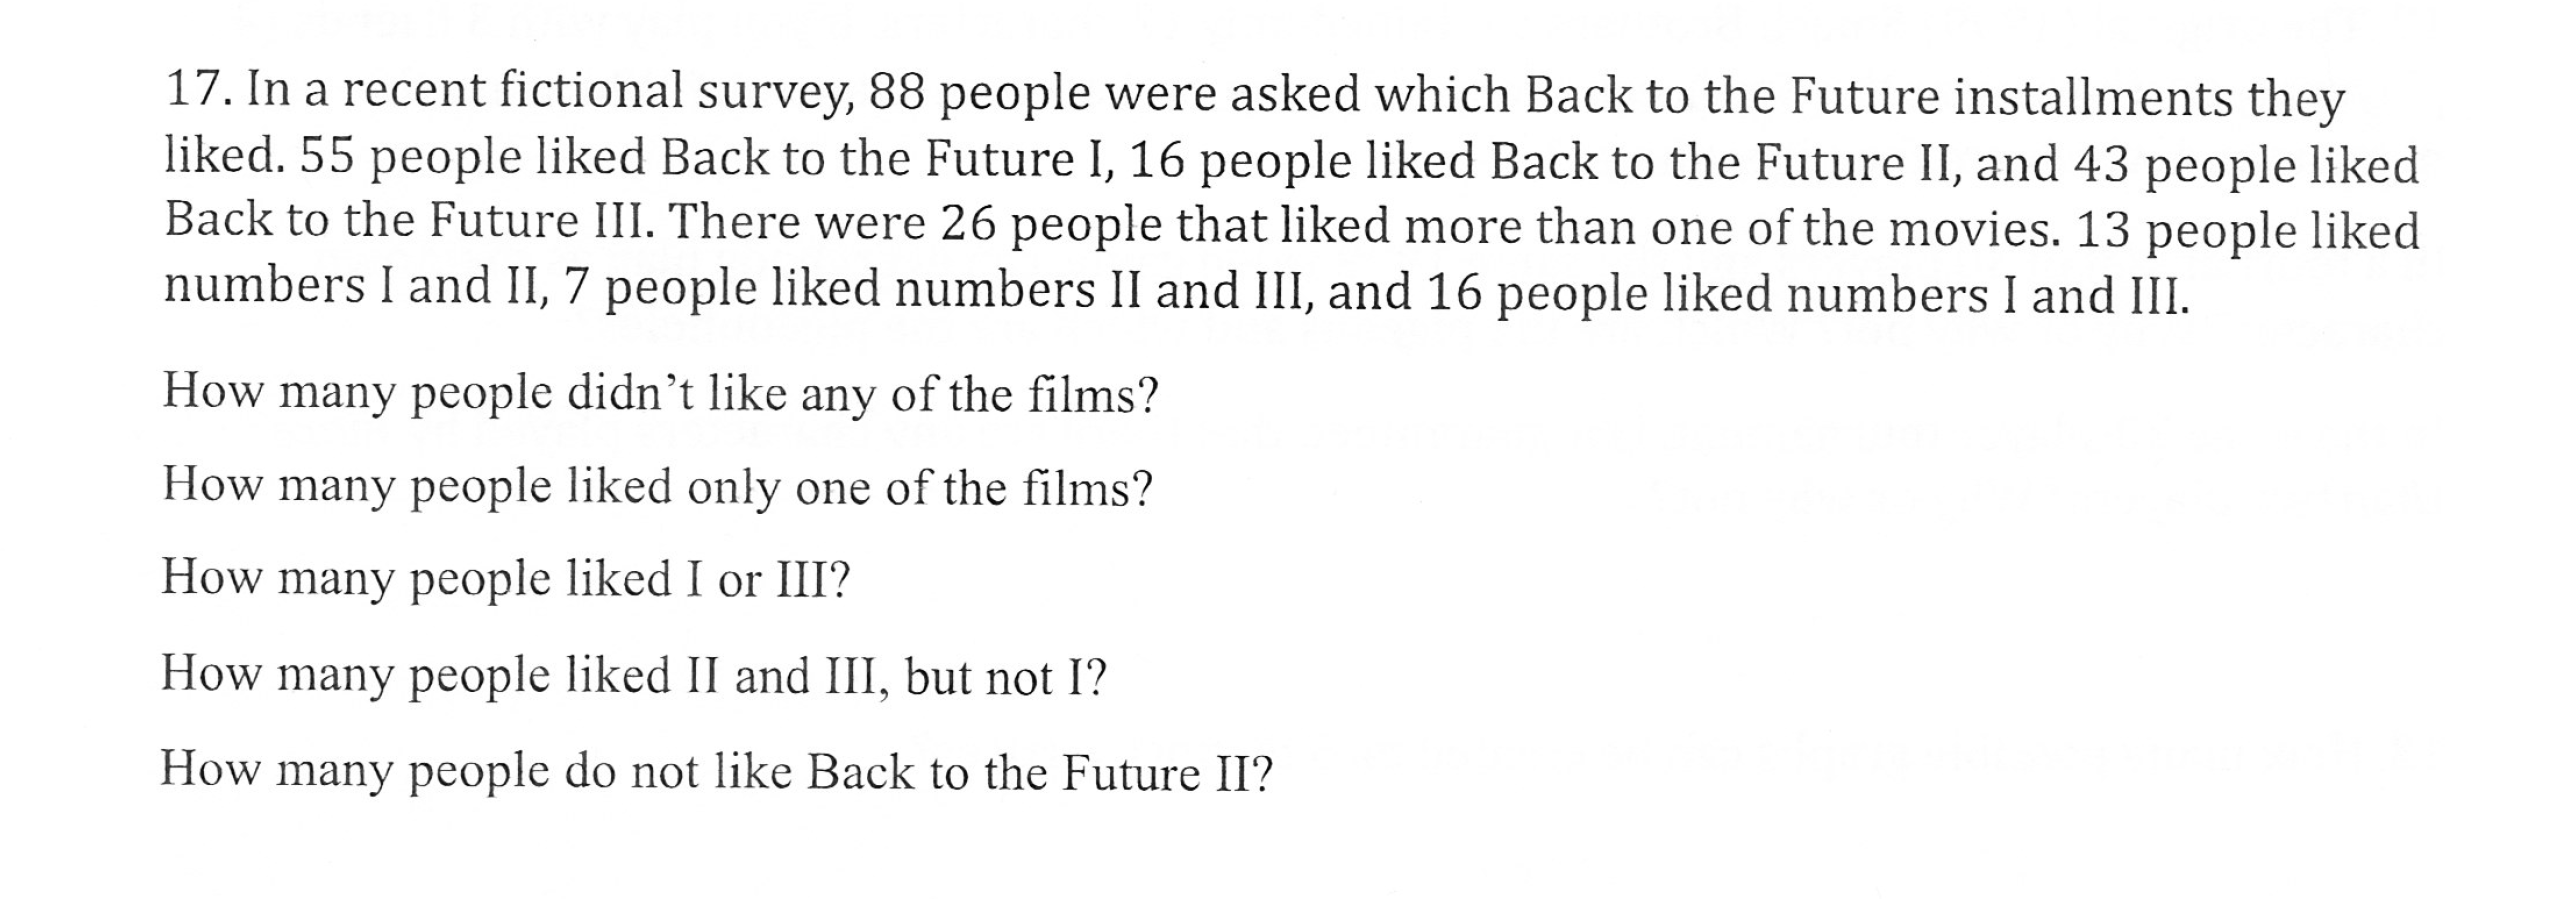 17. In a recent fictional survey, 88 people were asked which Back to the Future installments they liked. 55 people liked Back to the Future I, 16 people liked Back to the Future II, and 43 people liked Back to the Future III. There were 26 people that liked more than one of the movies. 13 people liked numbers l and II, 7 people liked numbers 11 and ill, and 16 people liked numbers l and Ш How many people didn't like any of the films? How many people liked only one of the films? How many people liked I or III? How many people liked II and III, but not I? How many people do not like Back to the Future II?